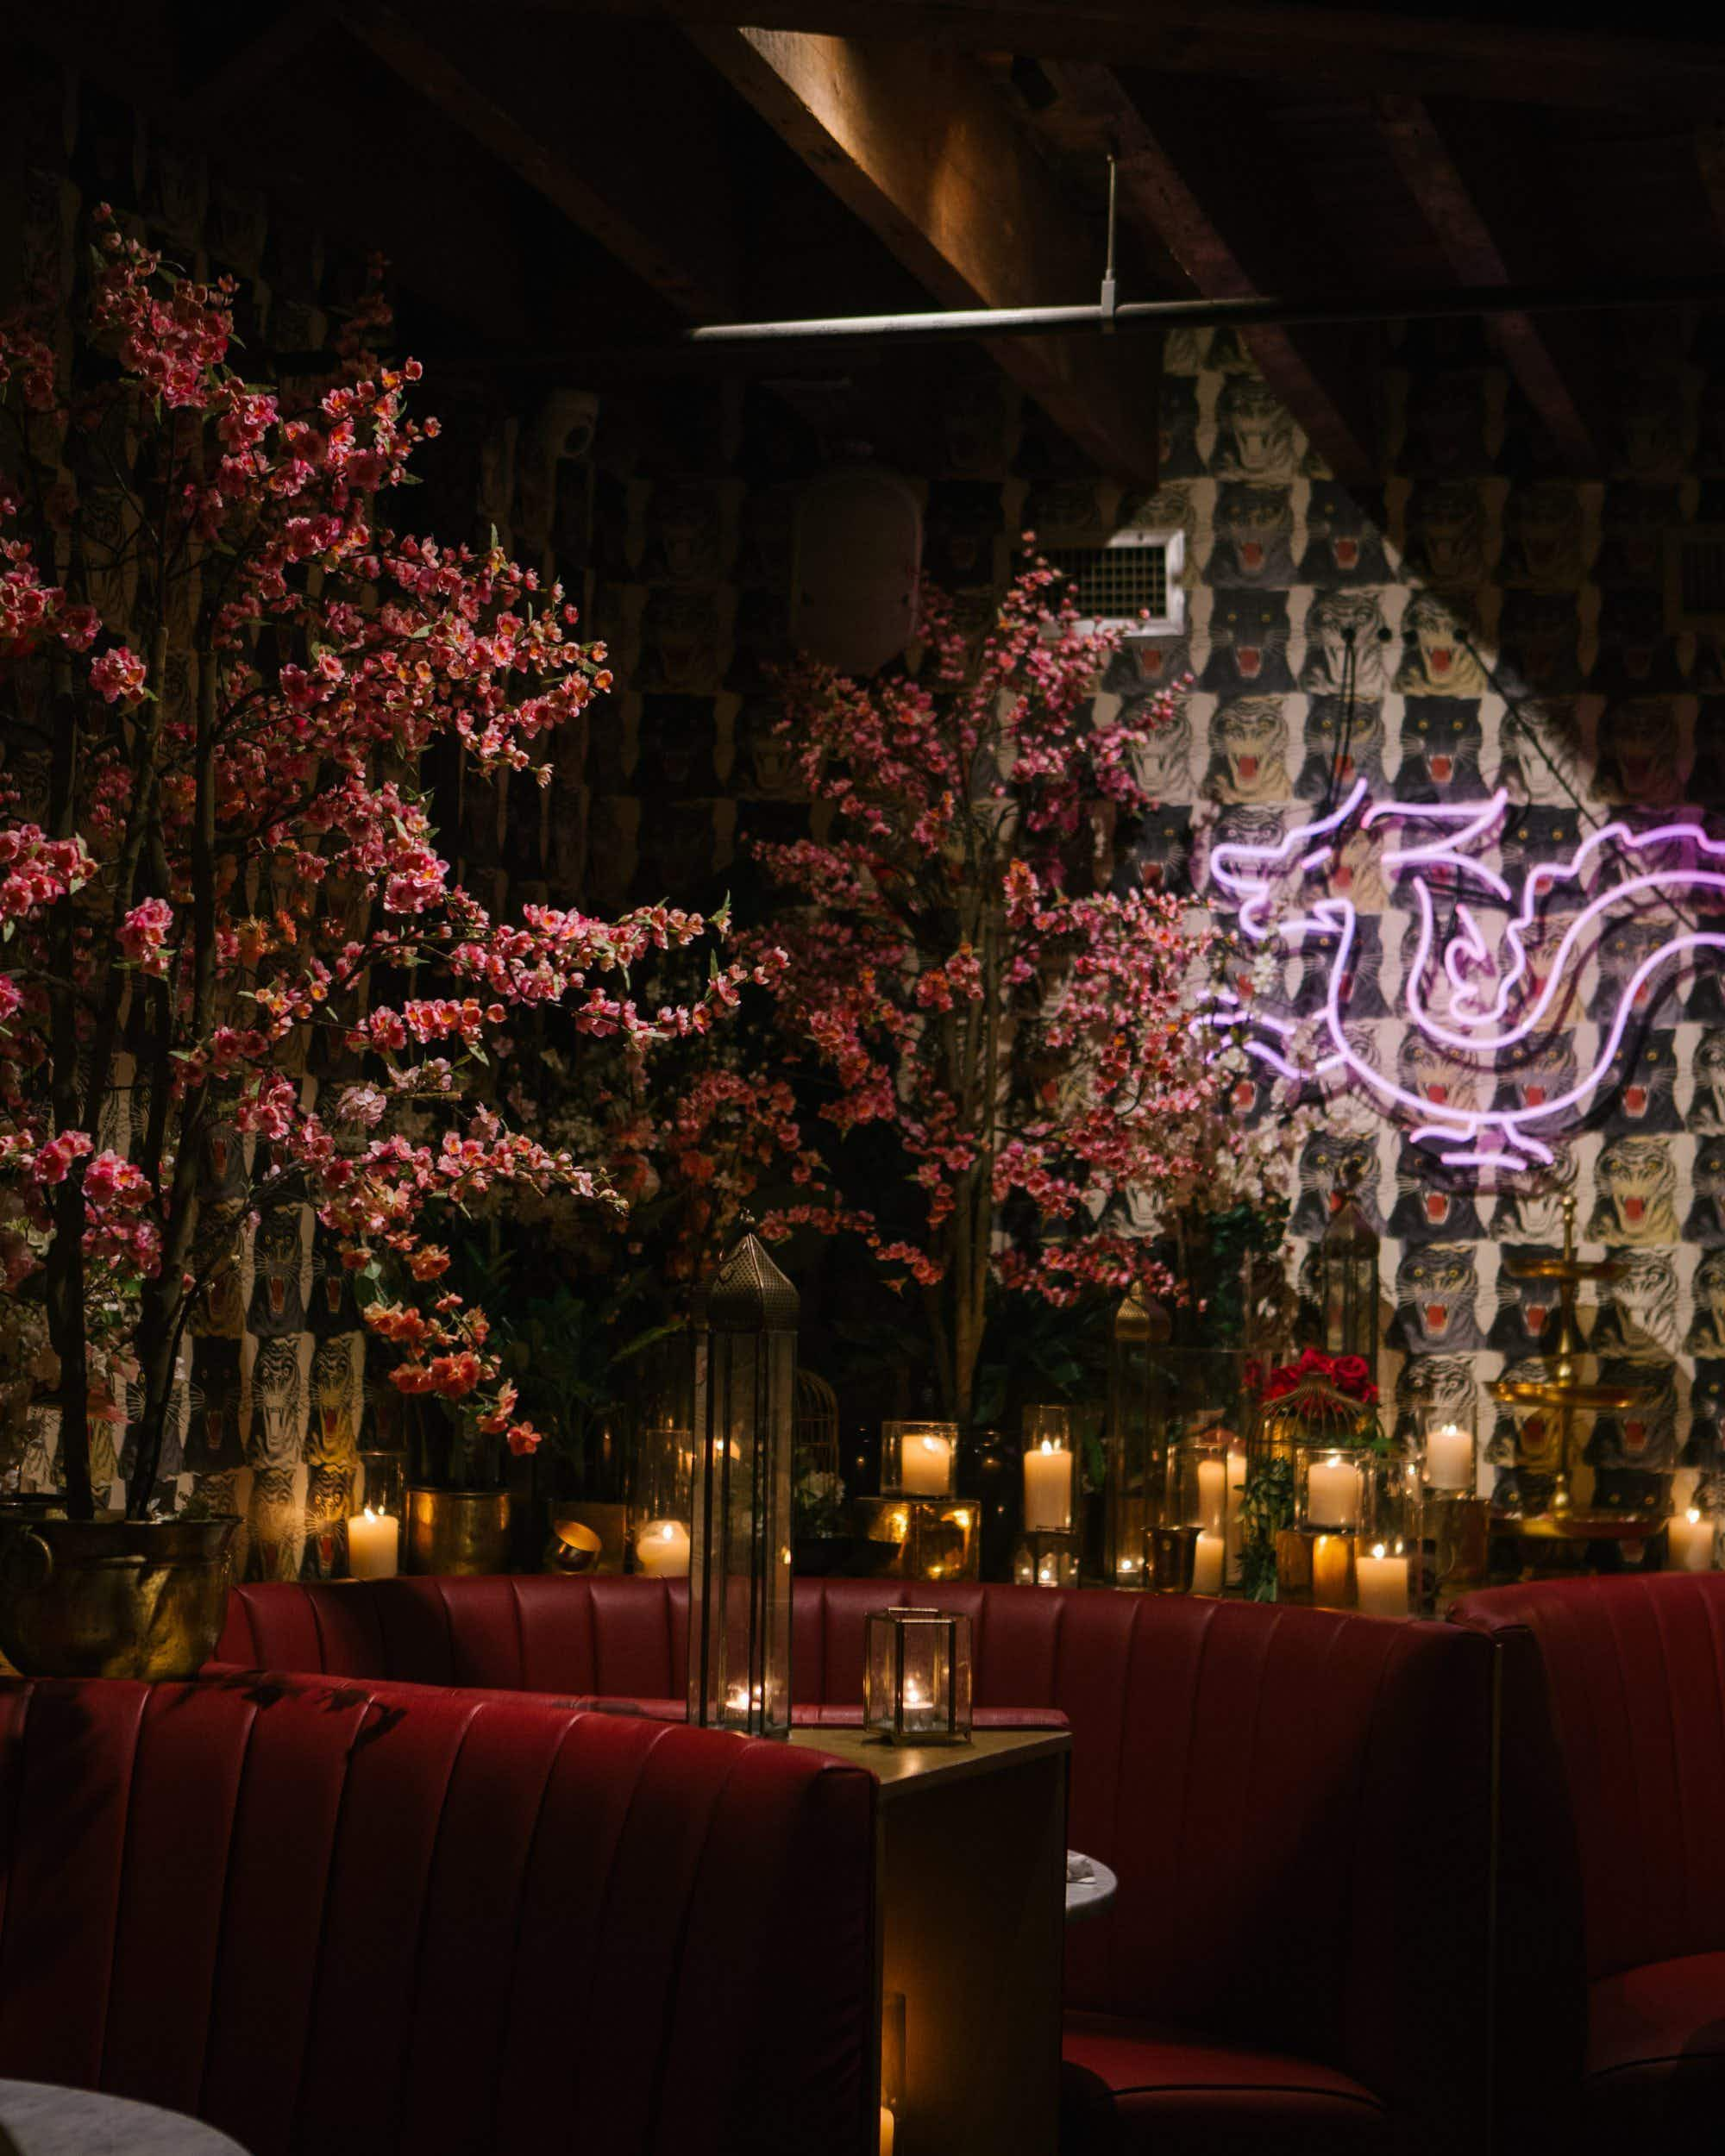 Celebs flock to hip NYC bar for its Gucci wallpaper and superfood cocktails